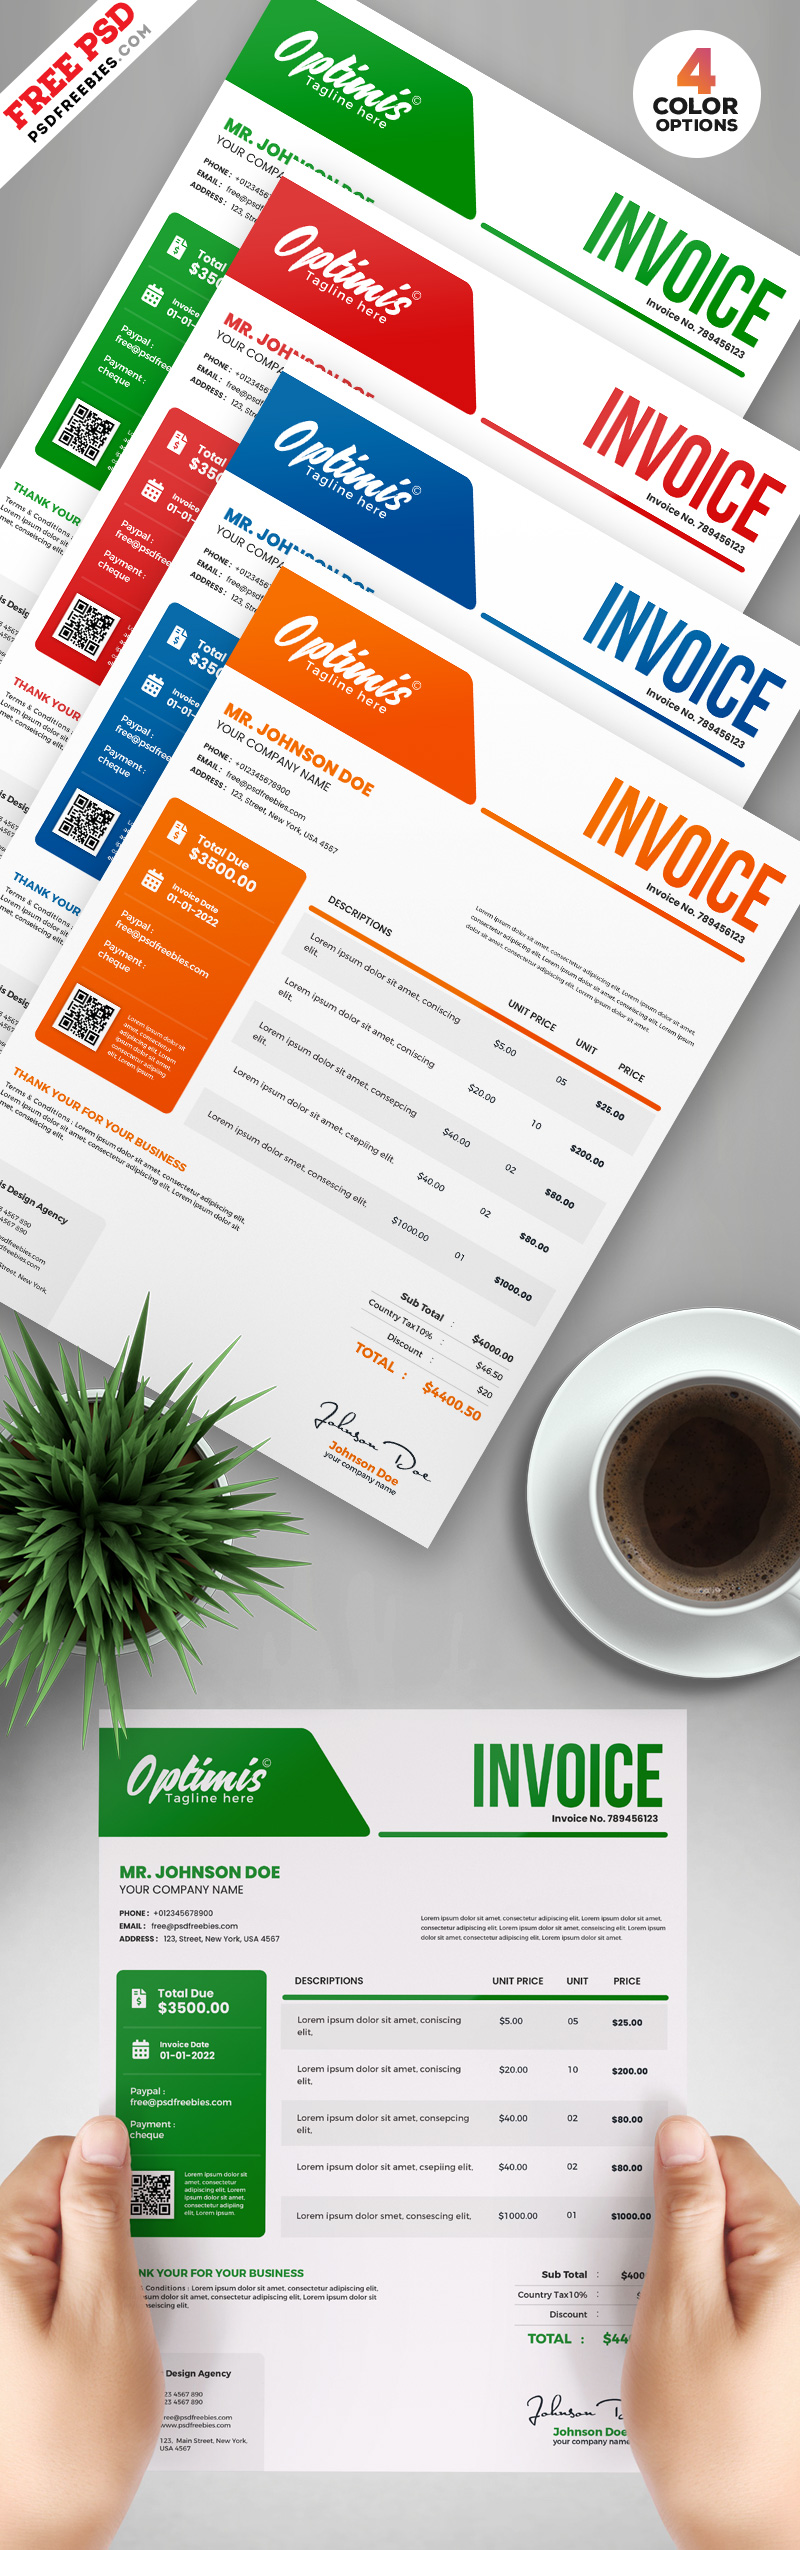 Professional A4 Invoice Design Template PSD